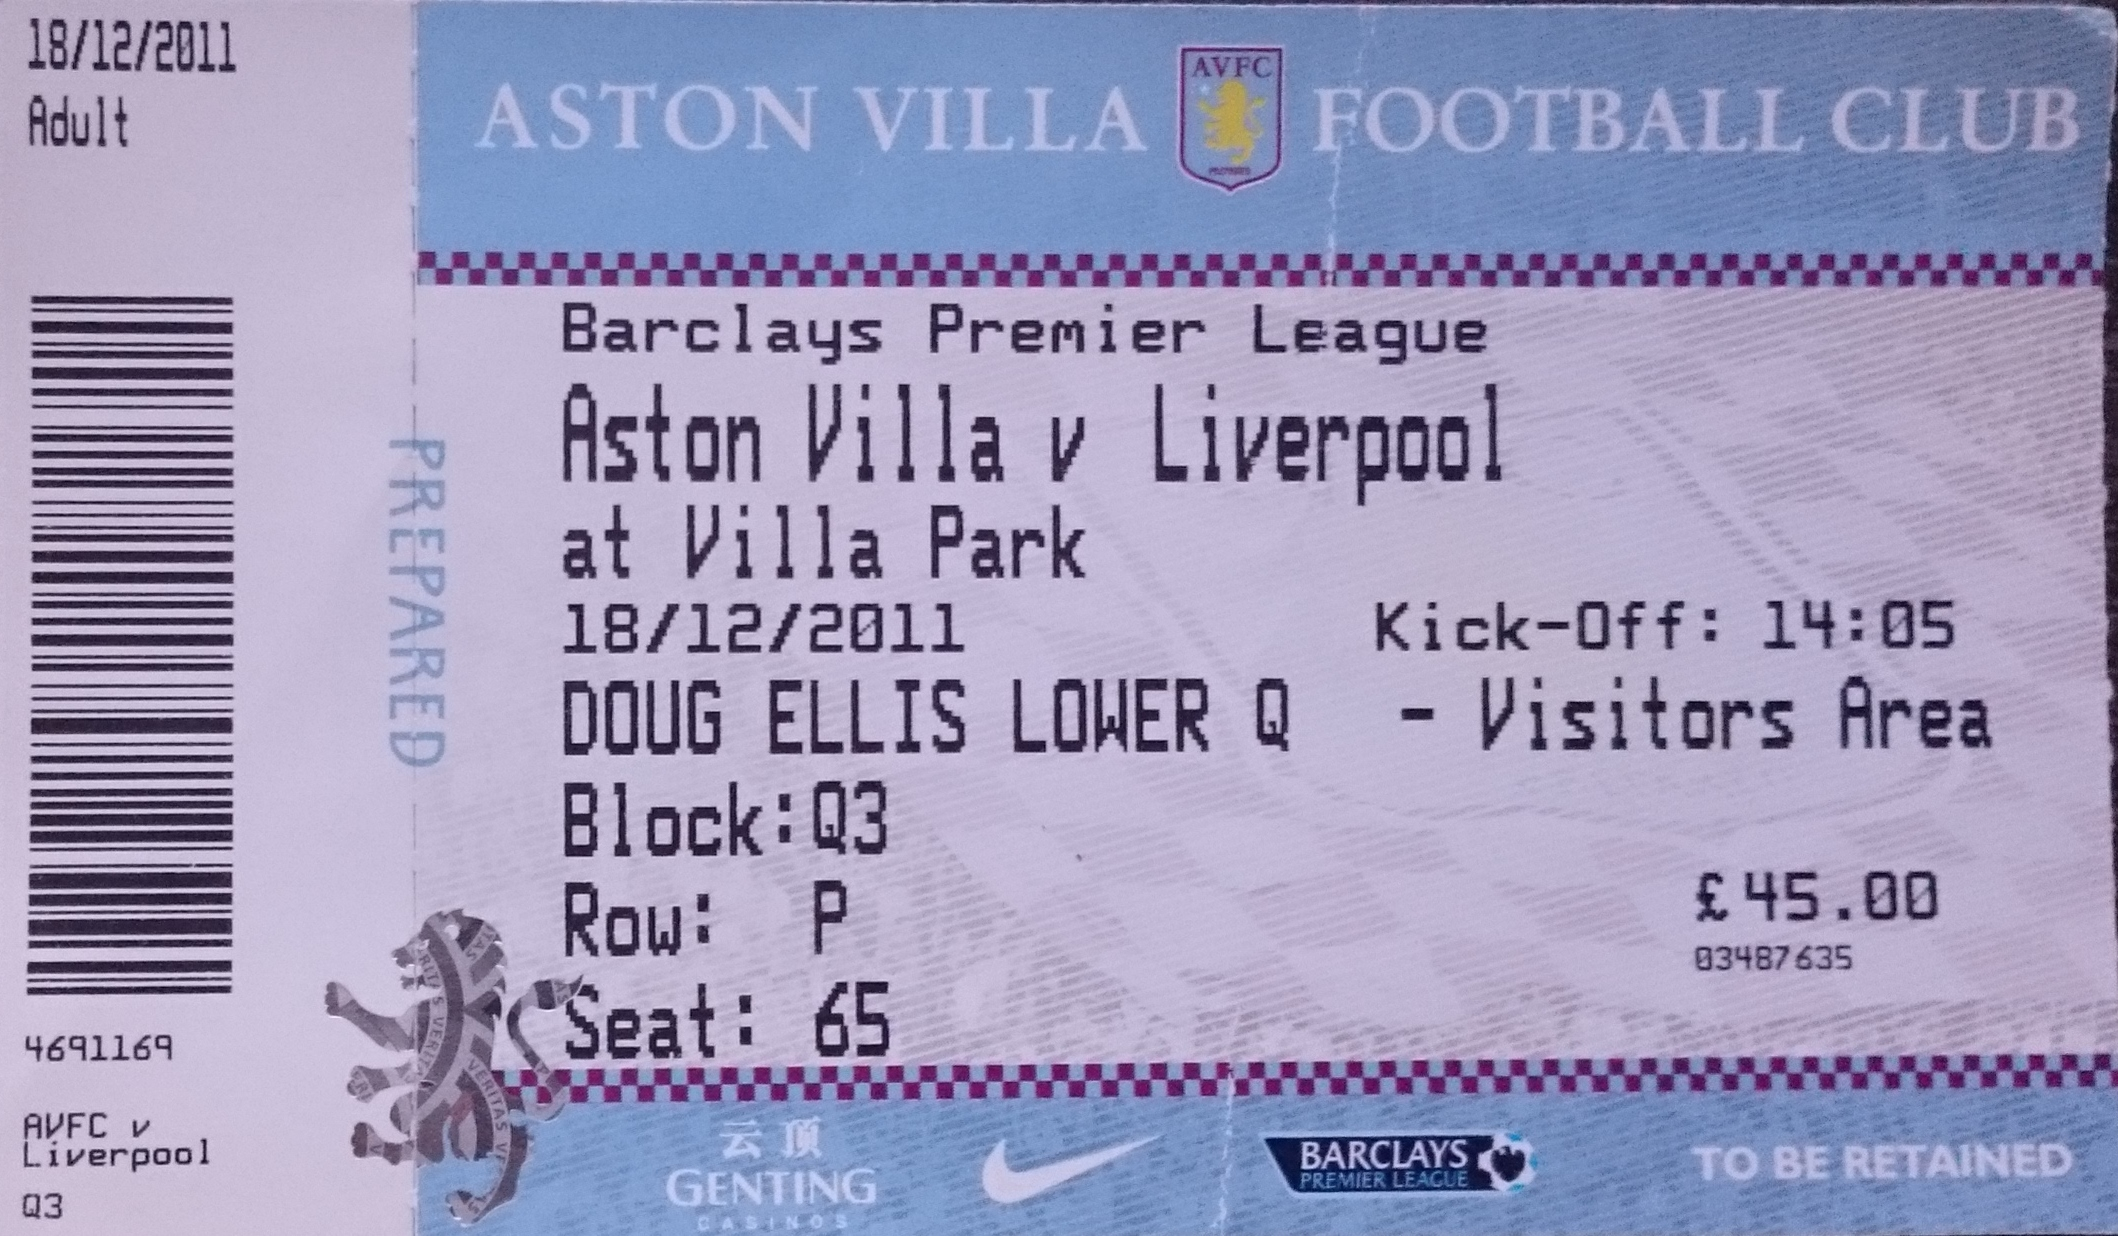 Matchdetails From Aston Villa Liverpool Played On Sunday